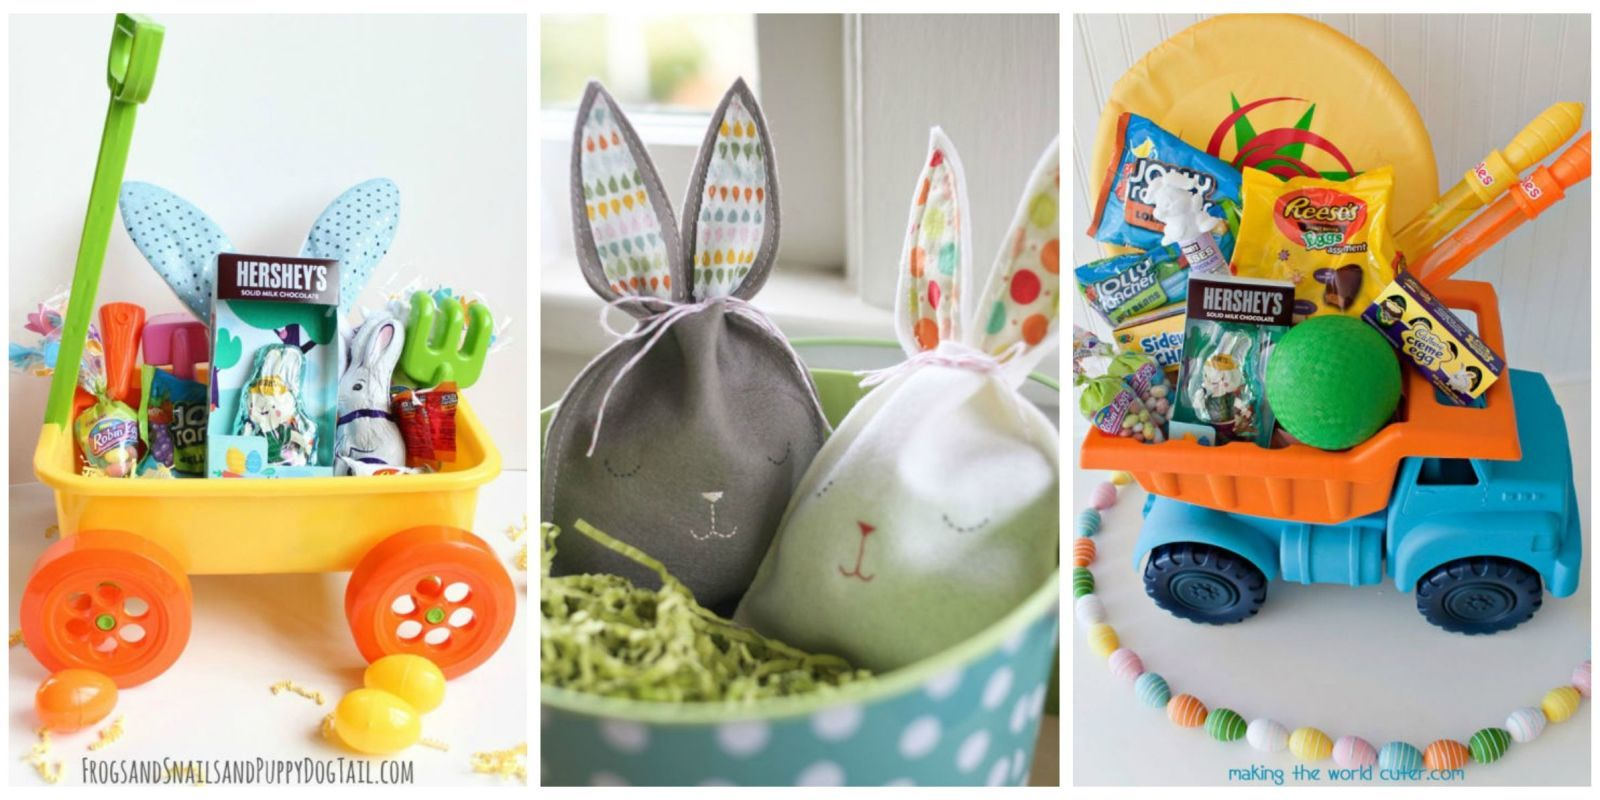 16 creative easter basket ideas your kids will love easter tired of the same old easter basket gifts these budget friendly surprises are great negle Gallery